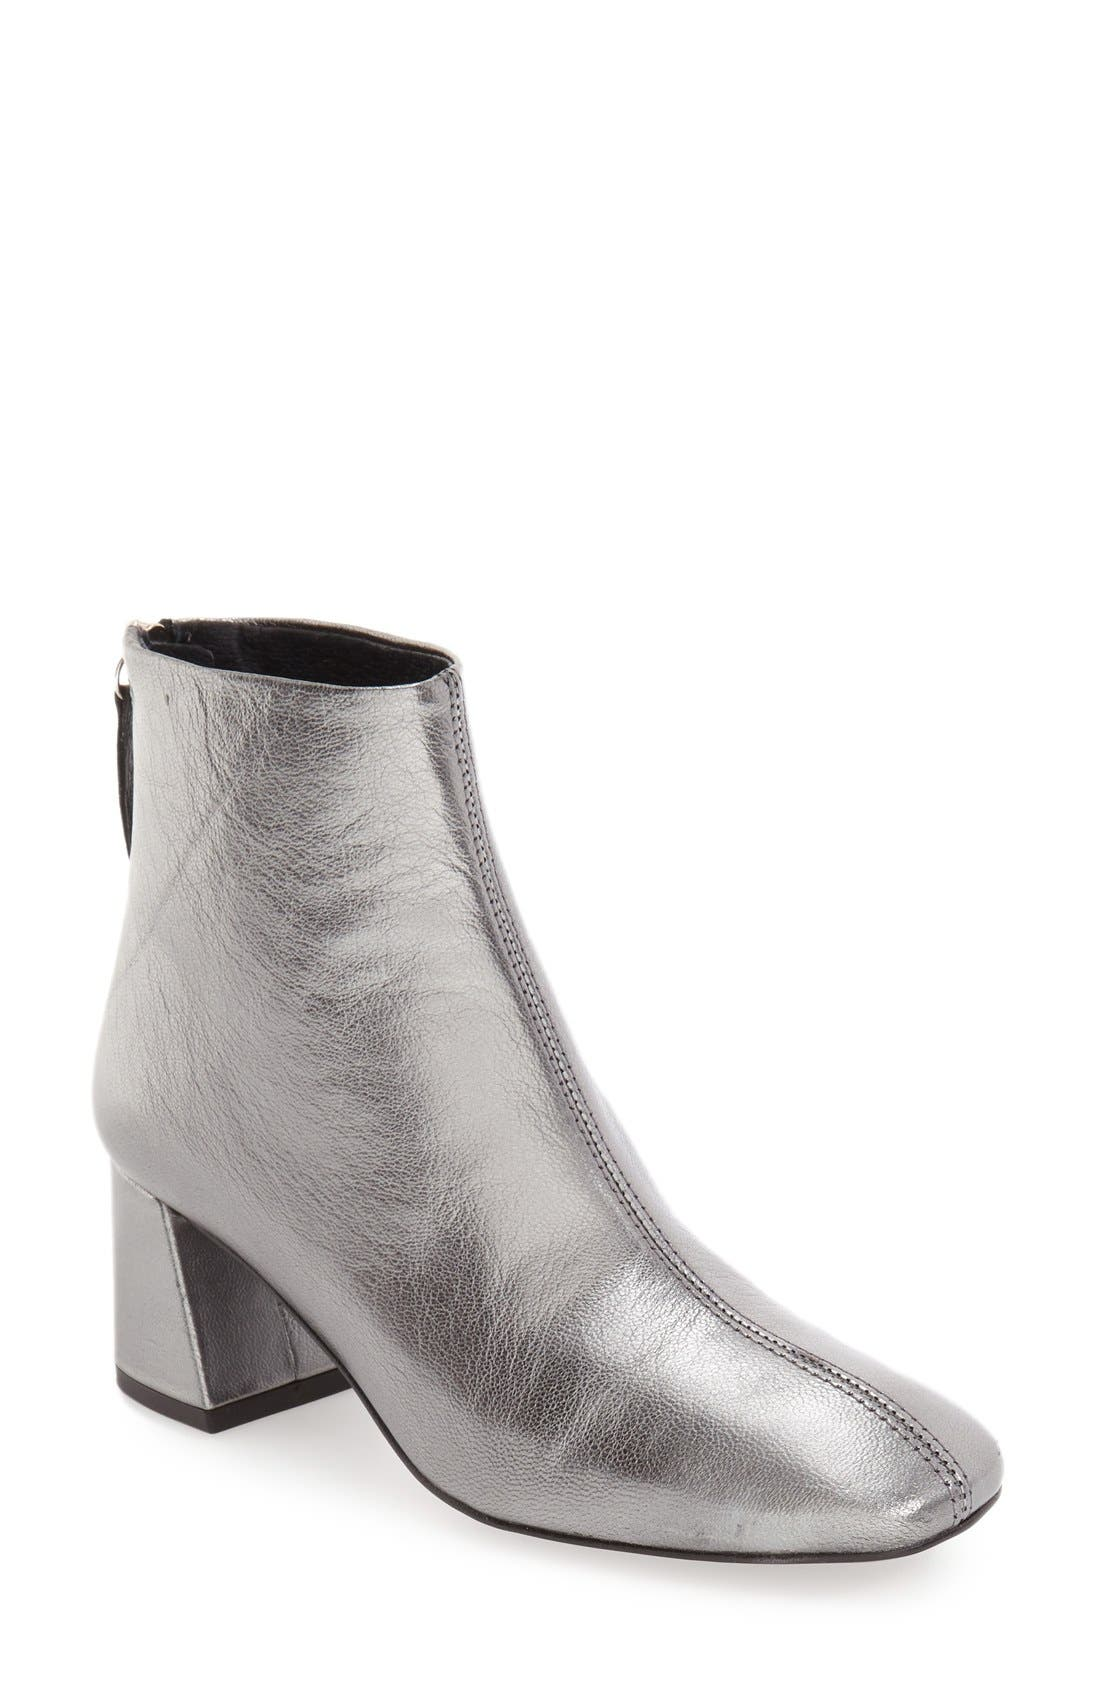 'Maggie' Flared Heel Bootie,                             Main thumbnail 1, color,                             Silver